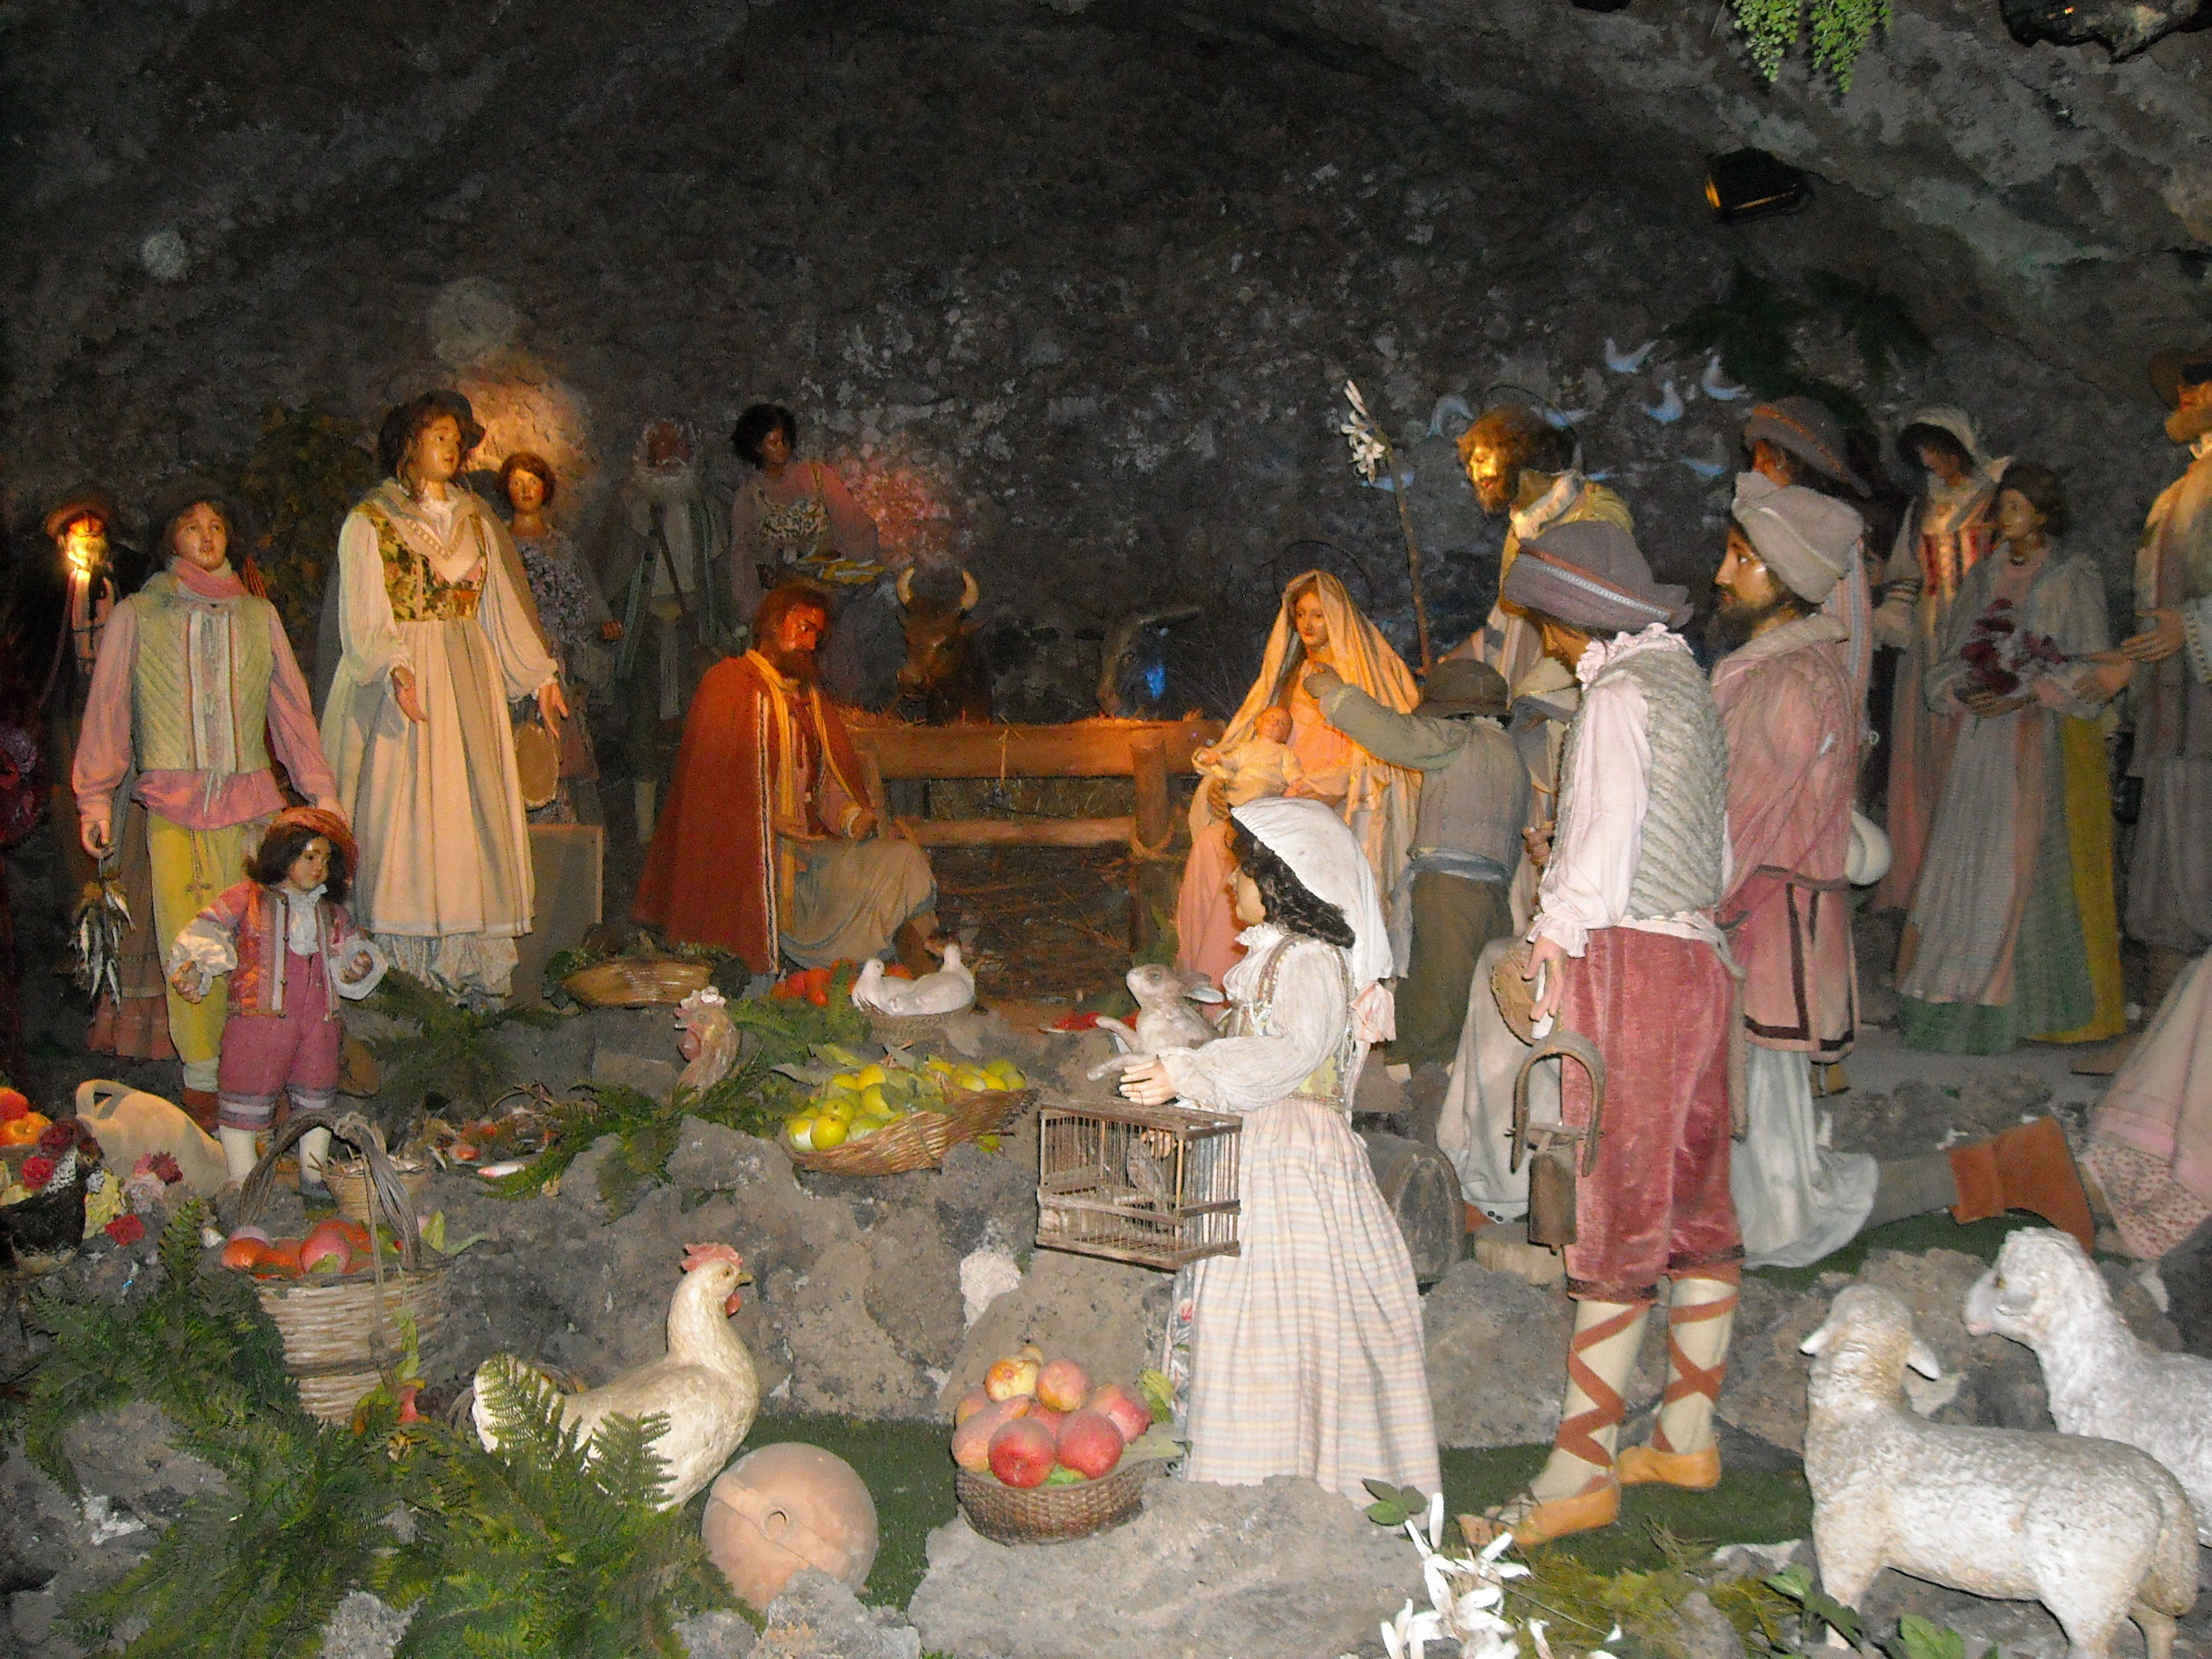 Life-sized 18th c Manger Scene, venerated for centuries at Acireale, Sicily (Photo by Br. Alexis Bugnolo)